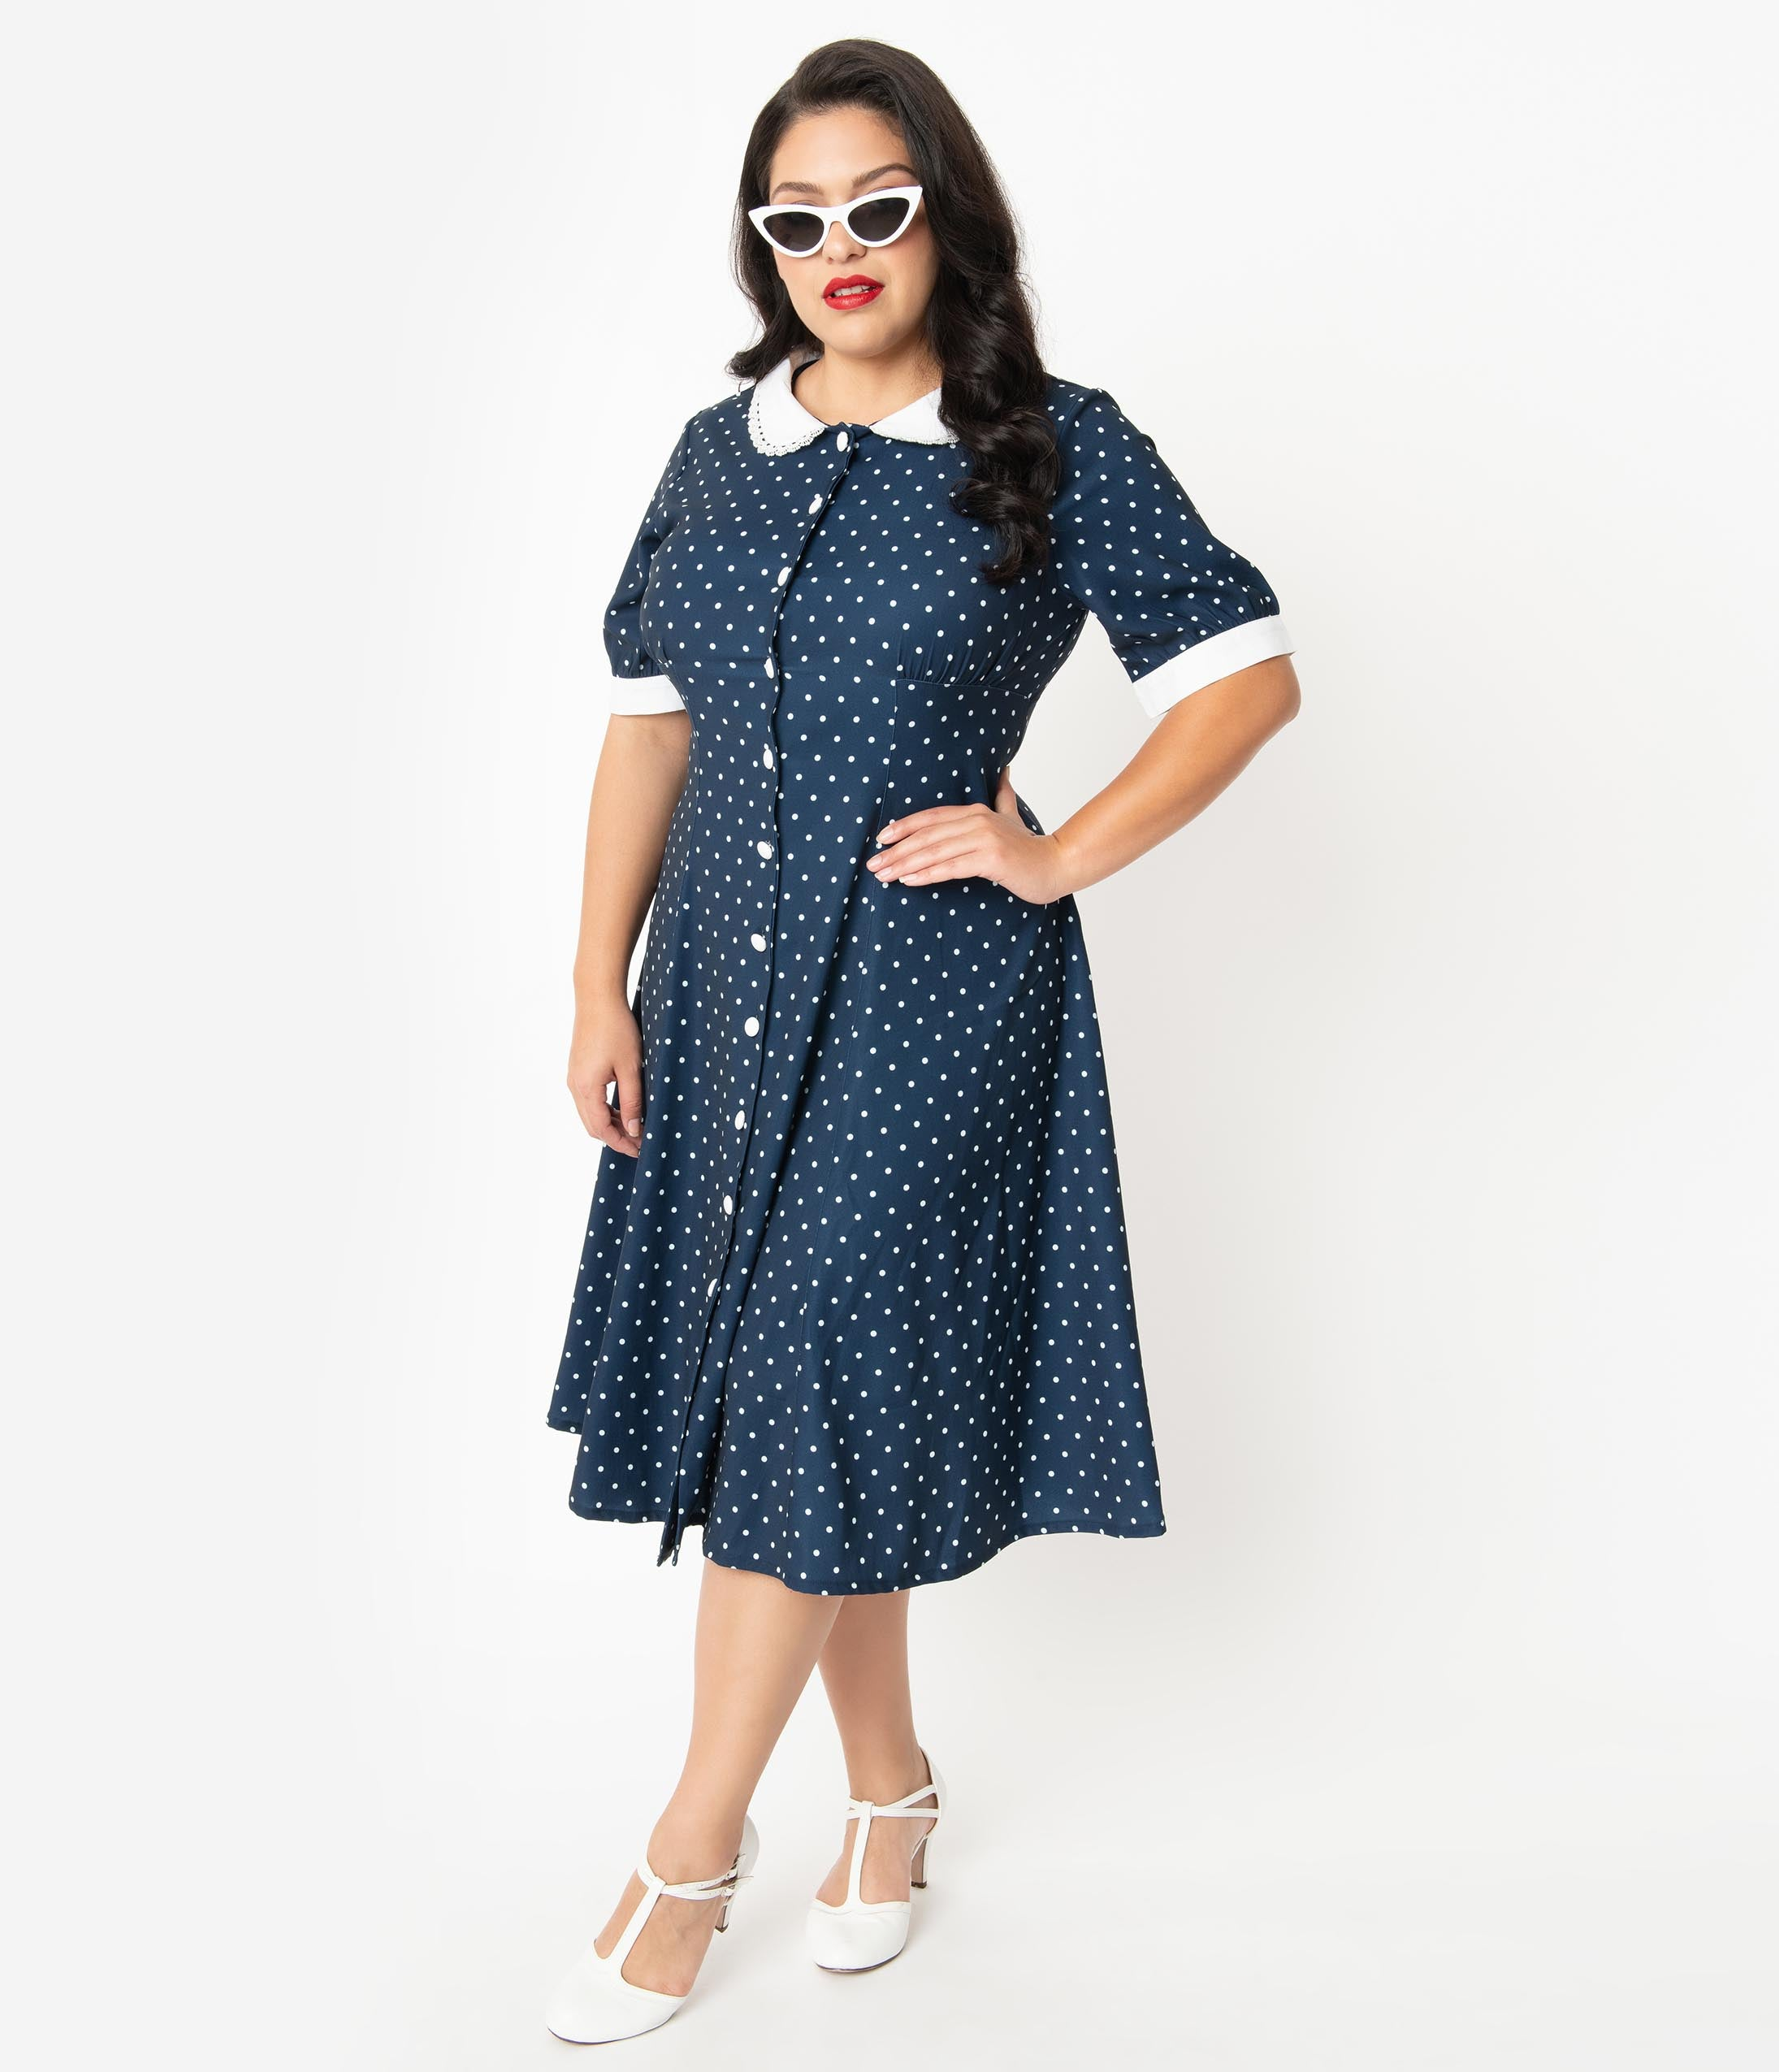 Shop 1940s Style Shirt Dress Shirtwaist Dresses